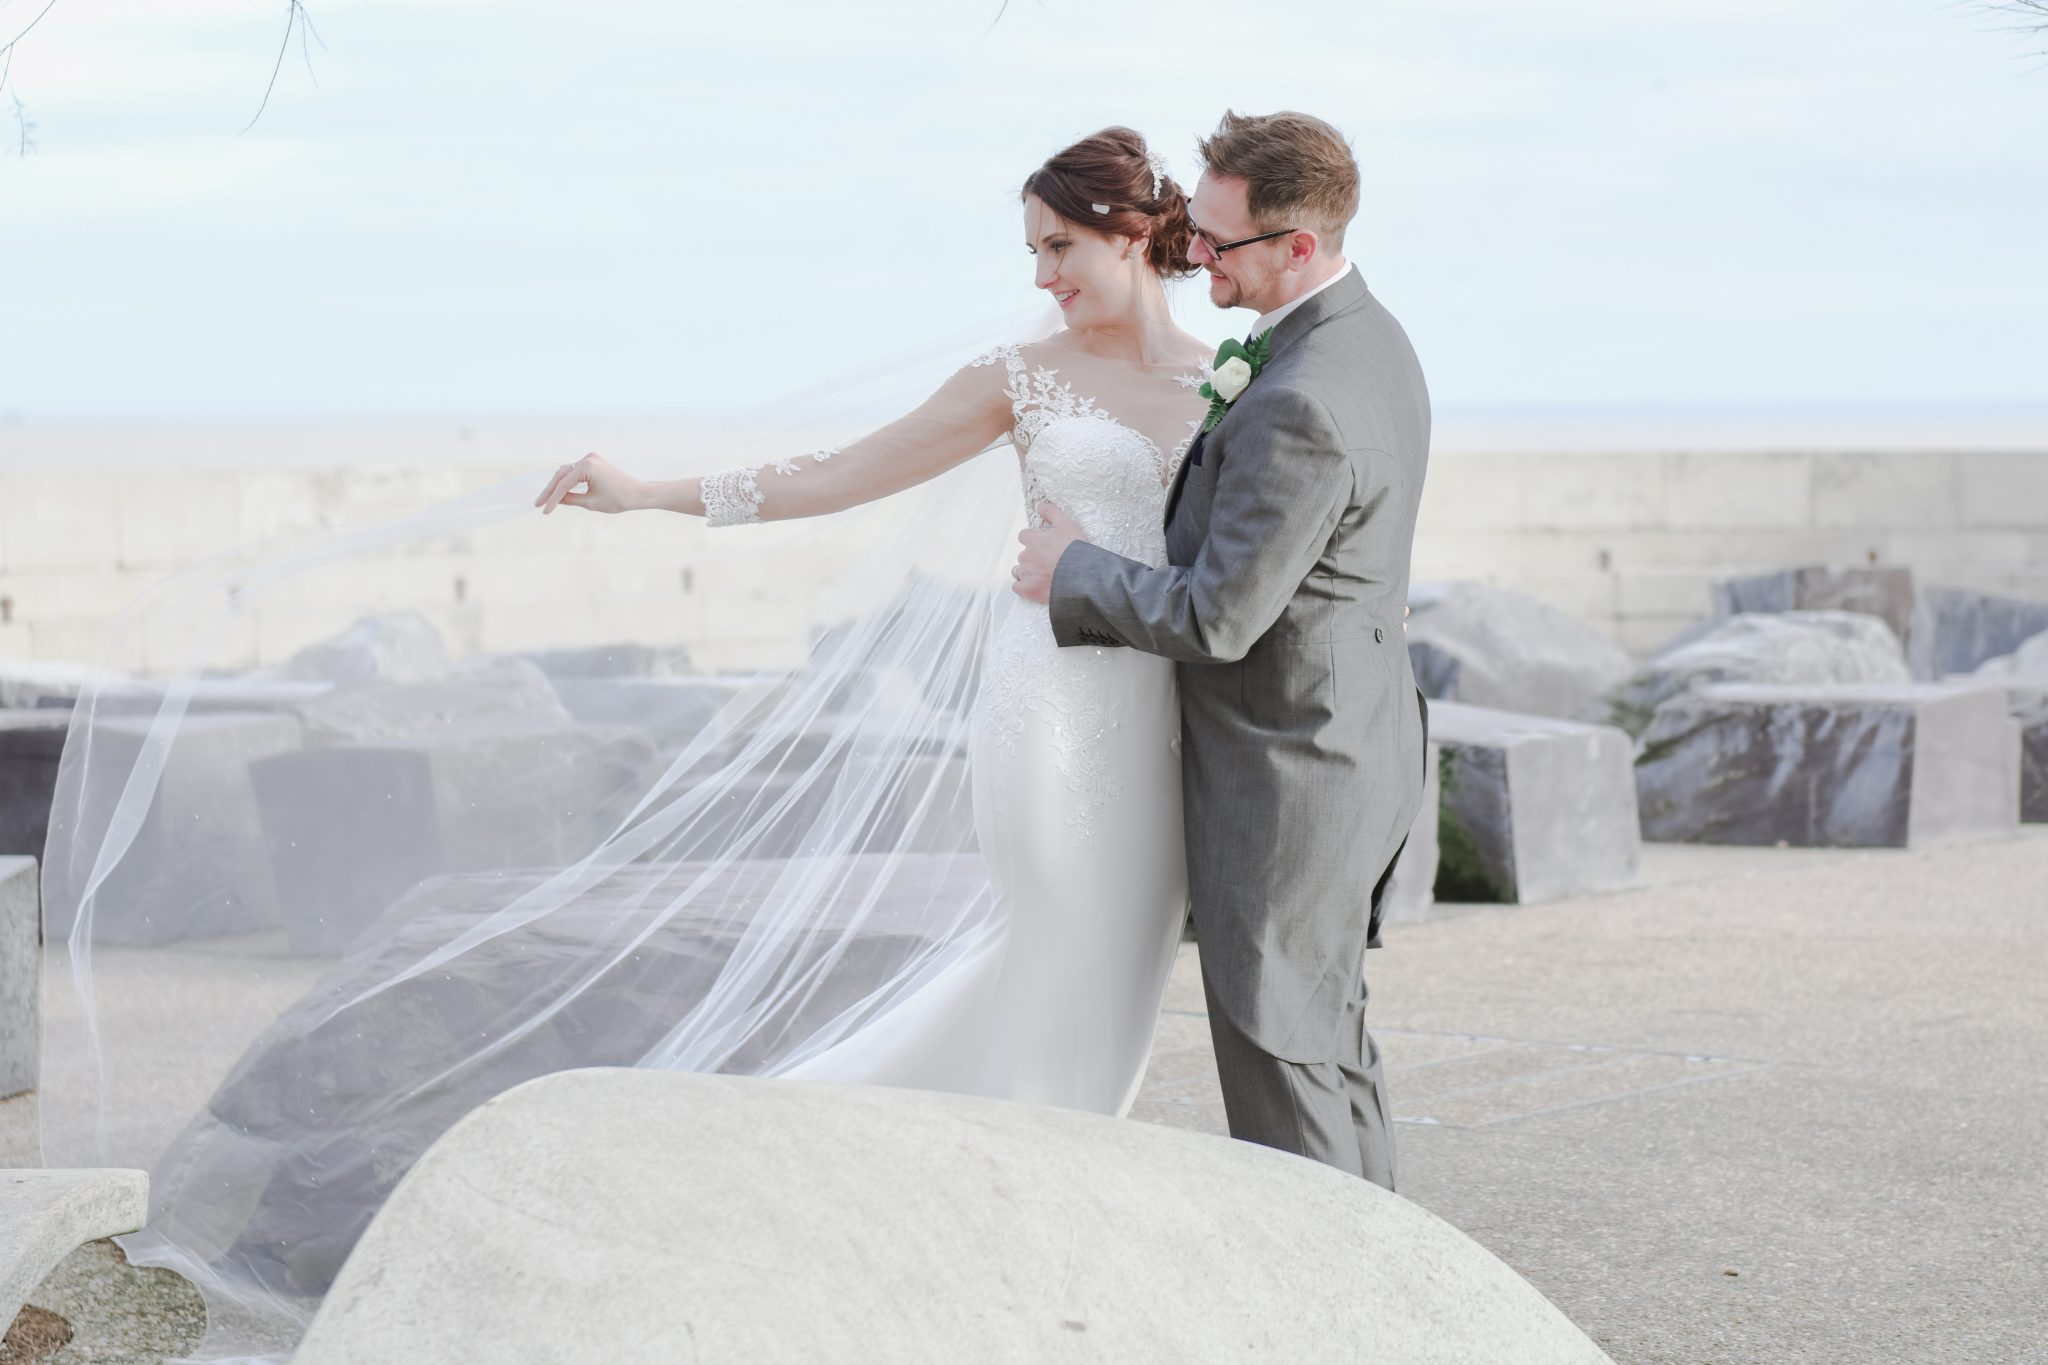 wedding photography on the beach at The burlington hotel, worthing